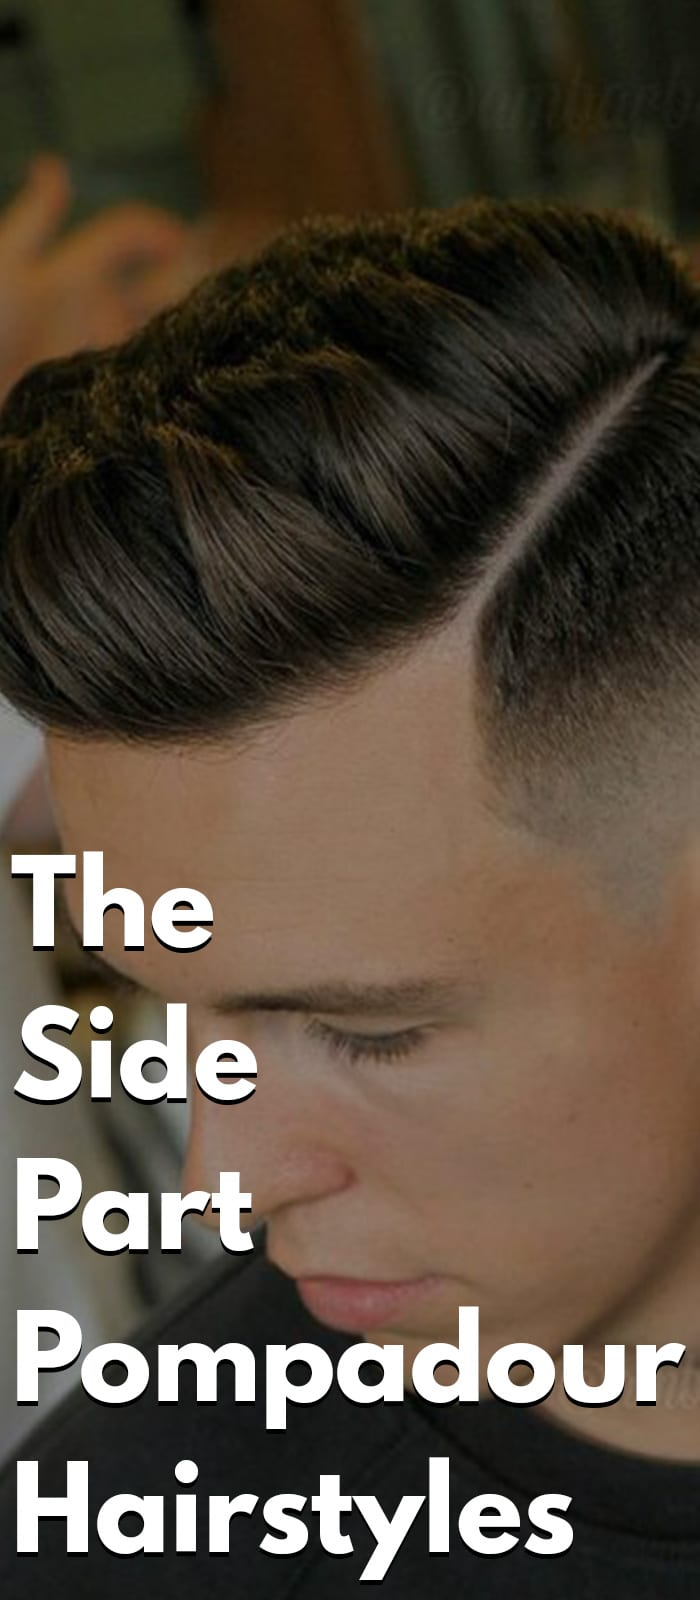 The Side Part Pompadour Hairstyle